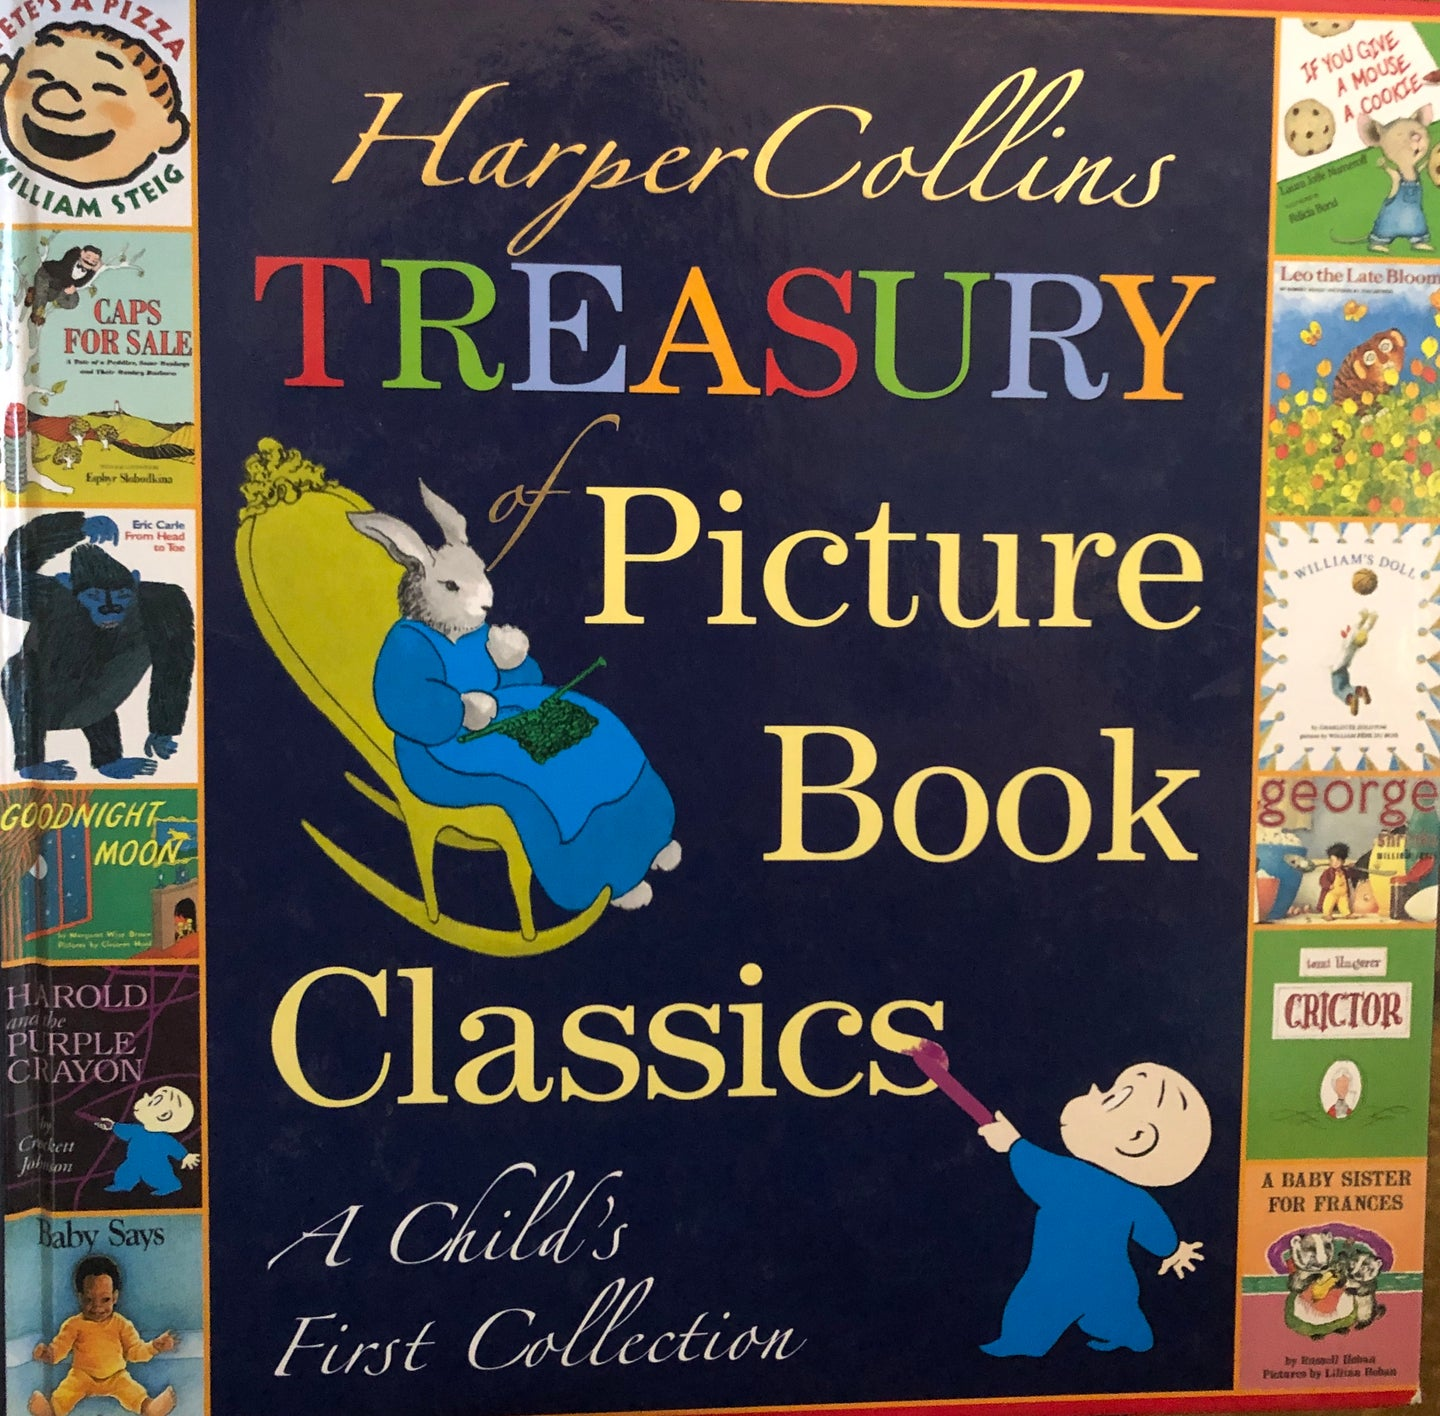 Harper Collins Treasury of Picture Book Classics: A Child's First Collection